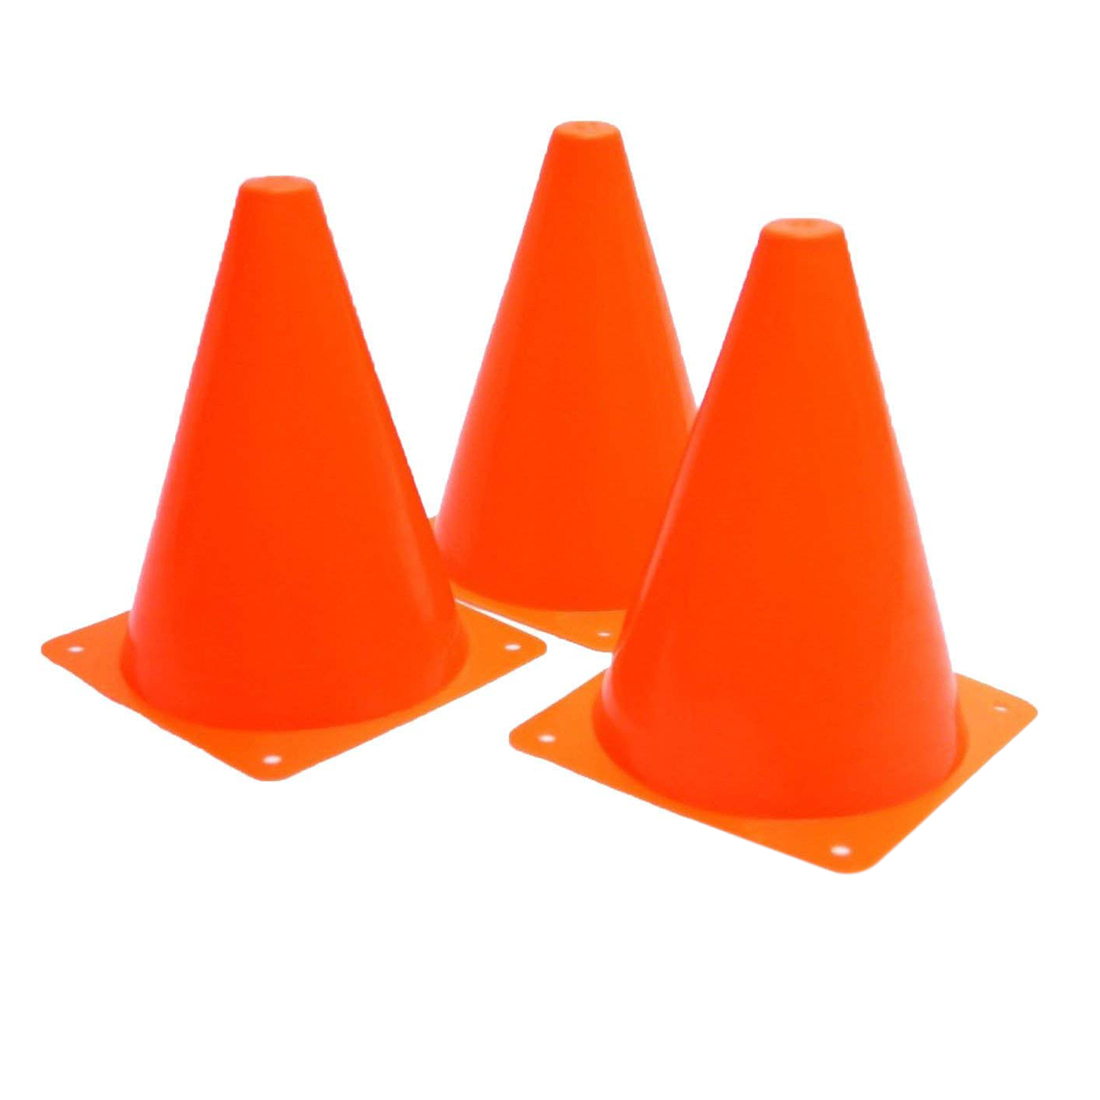 12pcs Plastic Traffic Cones - Multipurpose Construction Theme Party Sports Activity Cones For Kids Outdoor And Indoor Gam